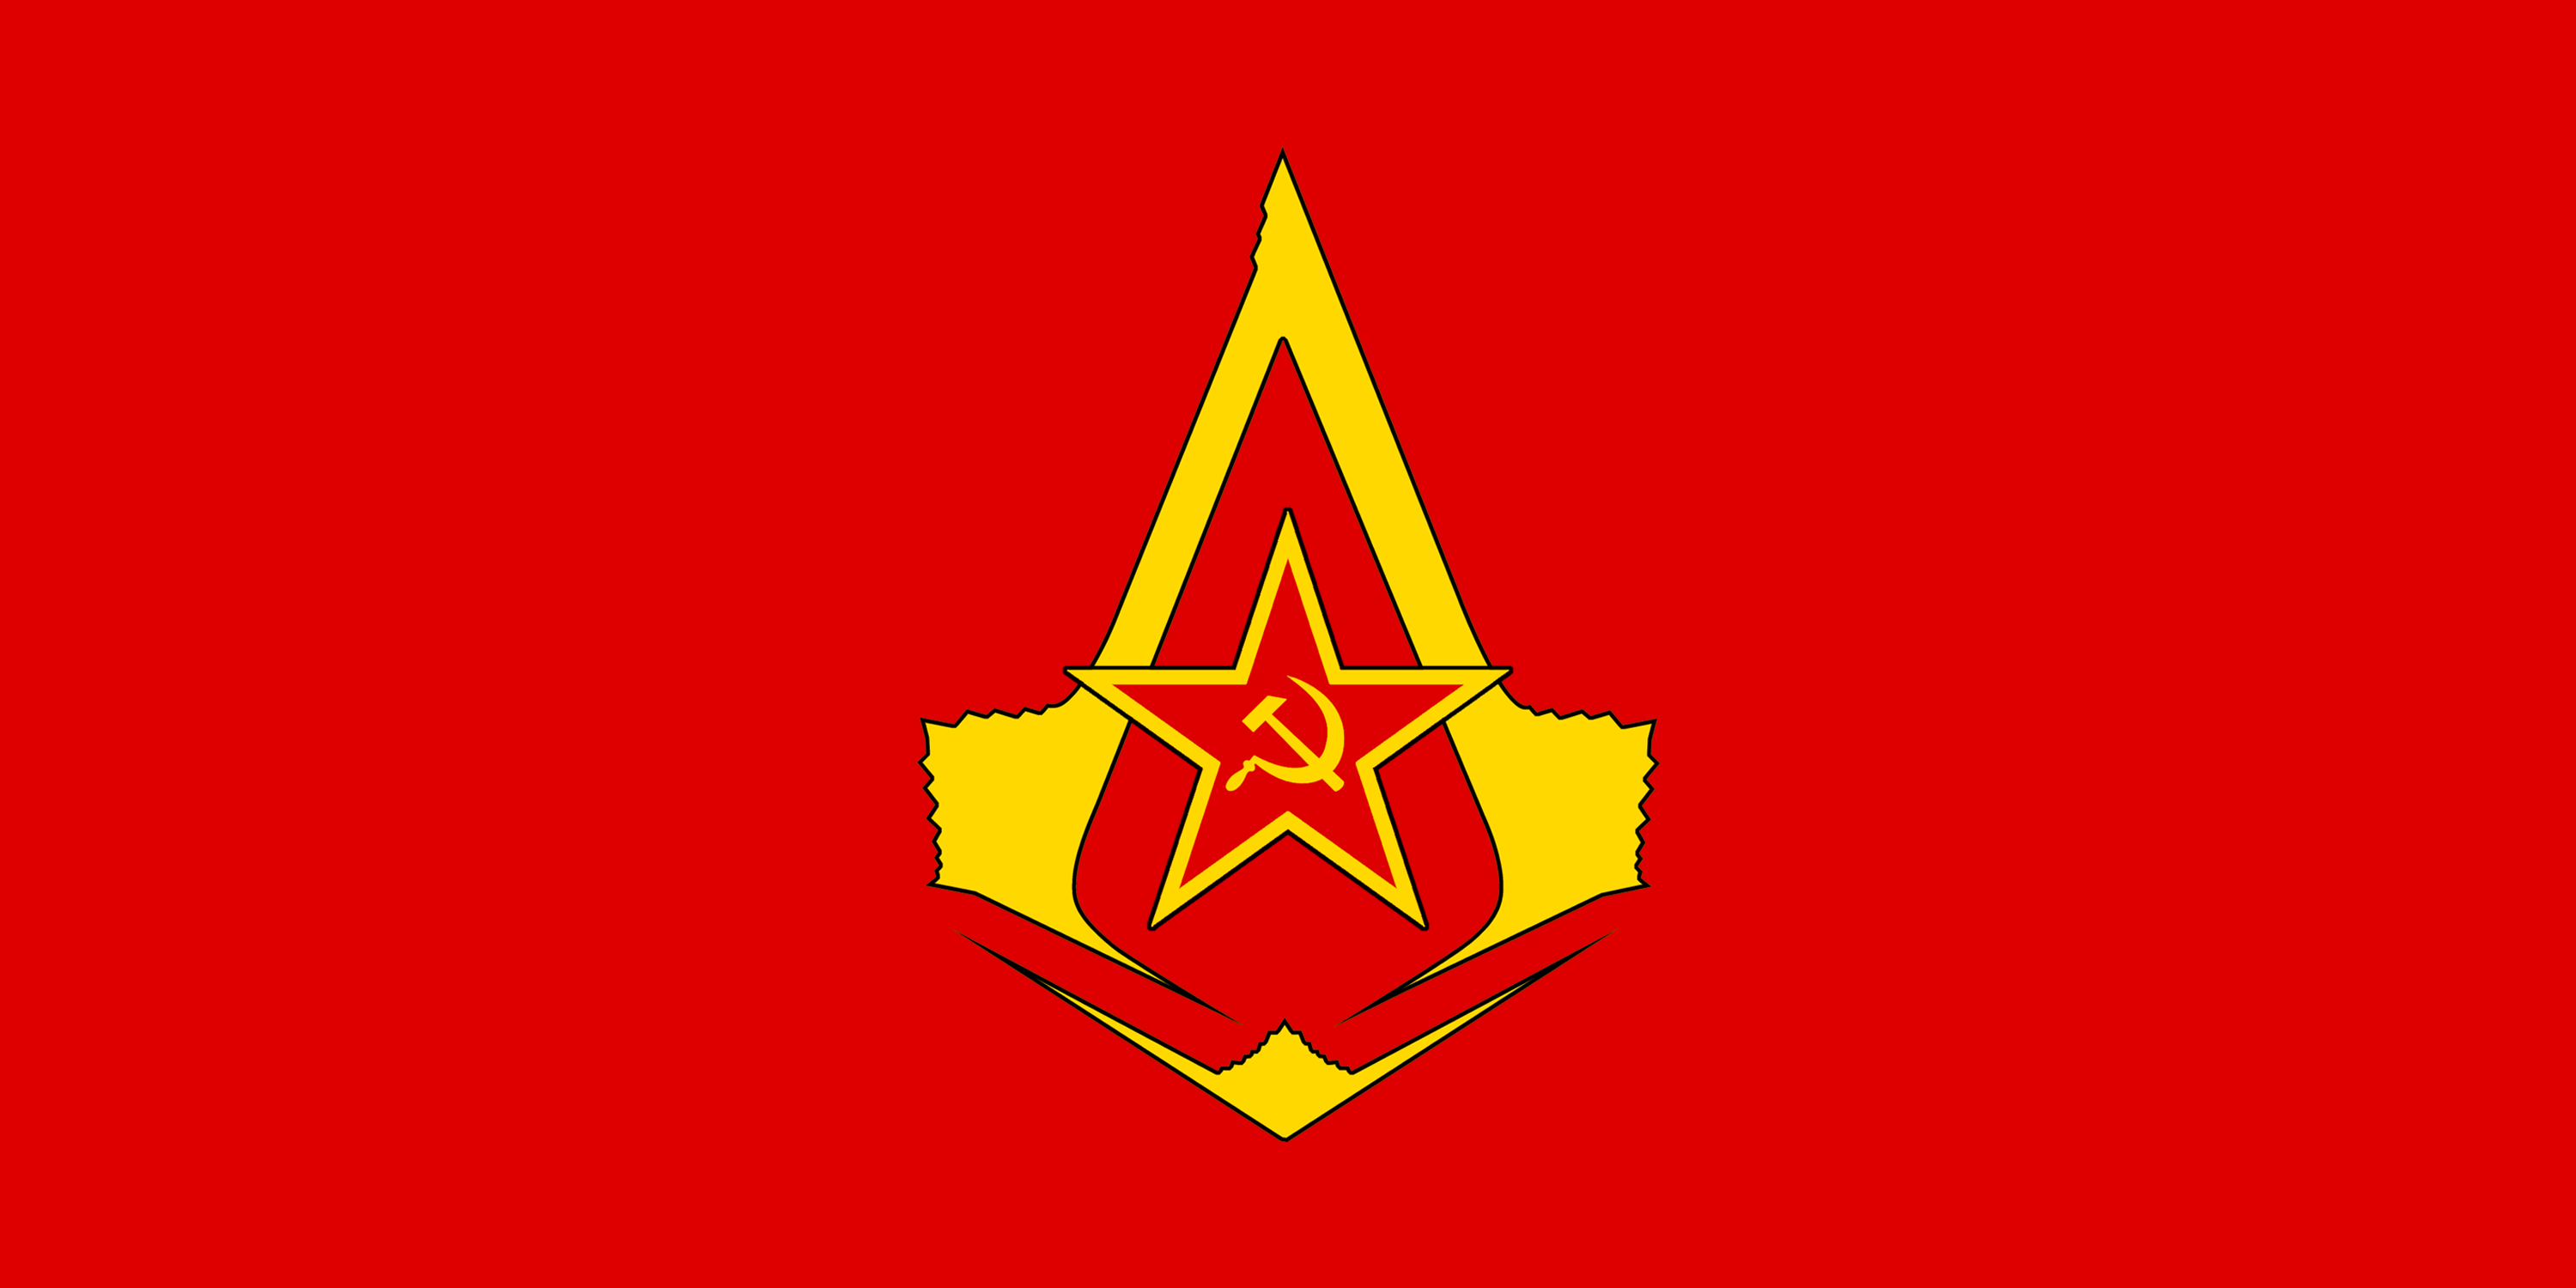 flag of the soviet assassins by redrich1917 on deviantart